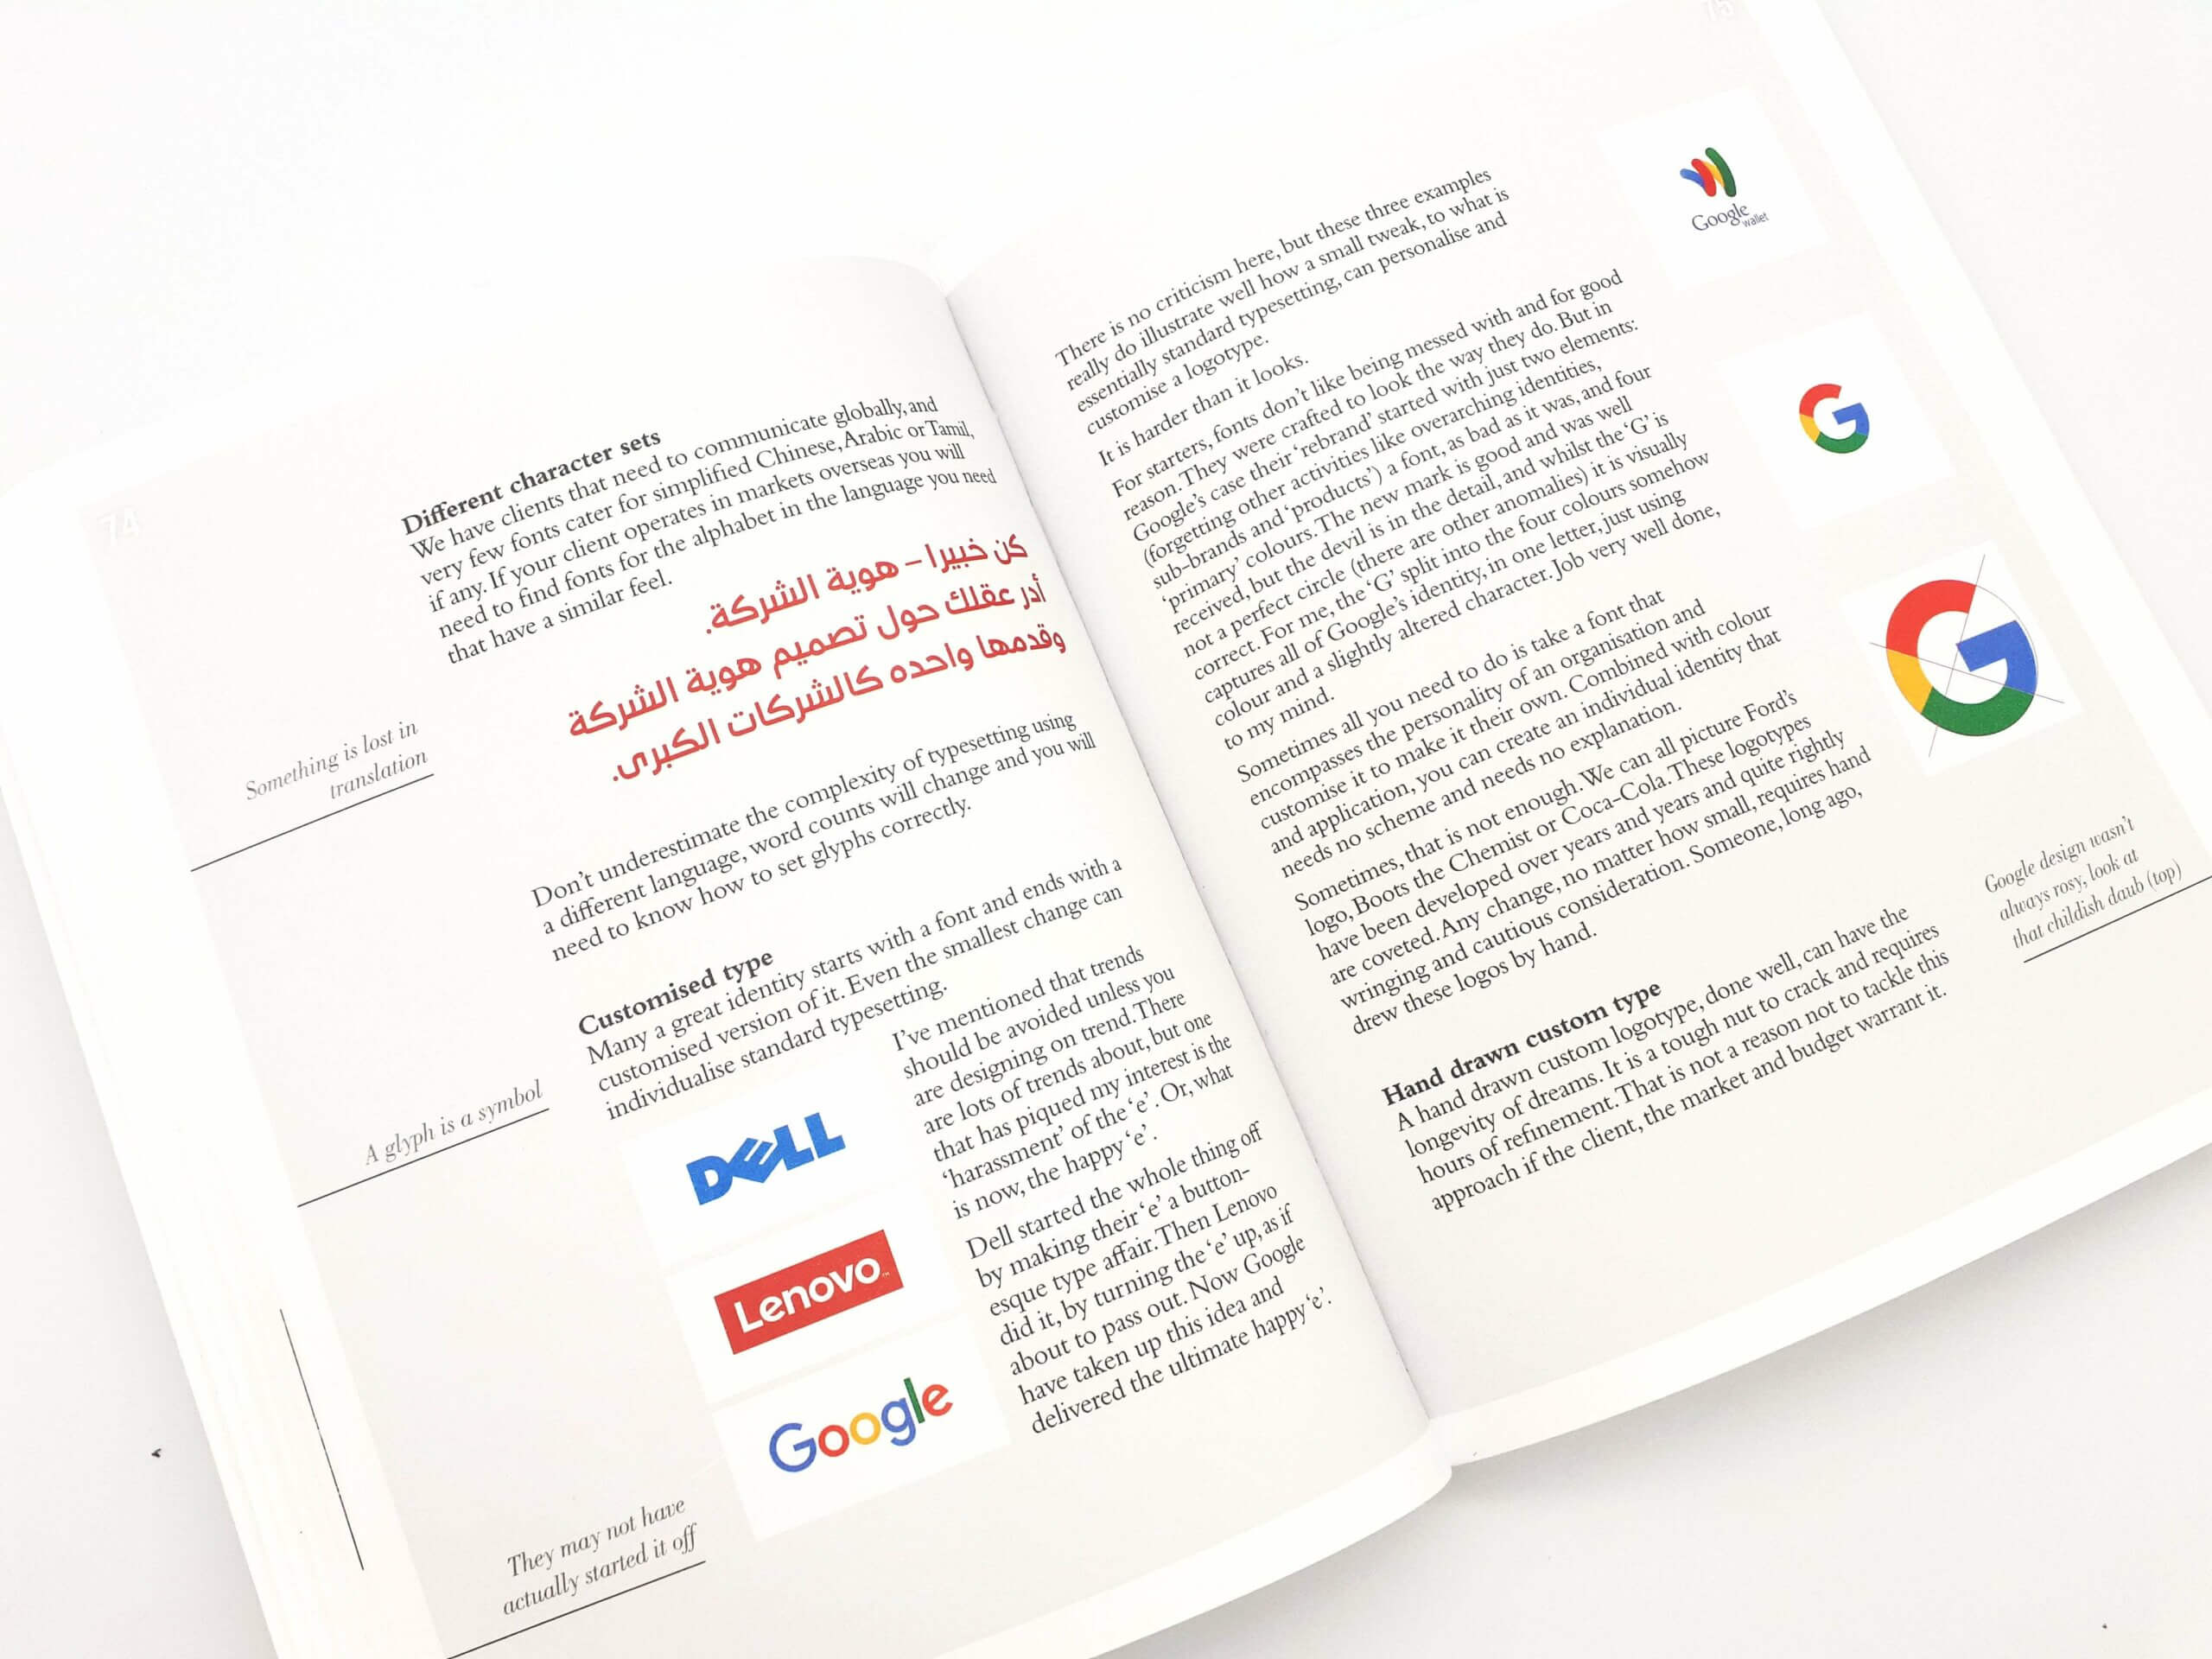 Know Your Onions - Corporate Identity By Drew de Soto - Book Review_7